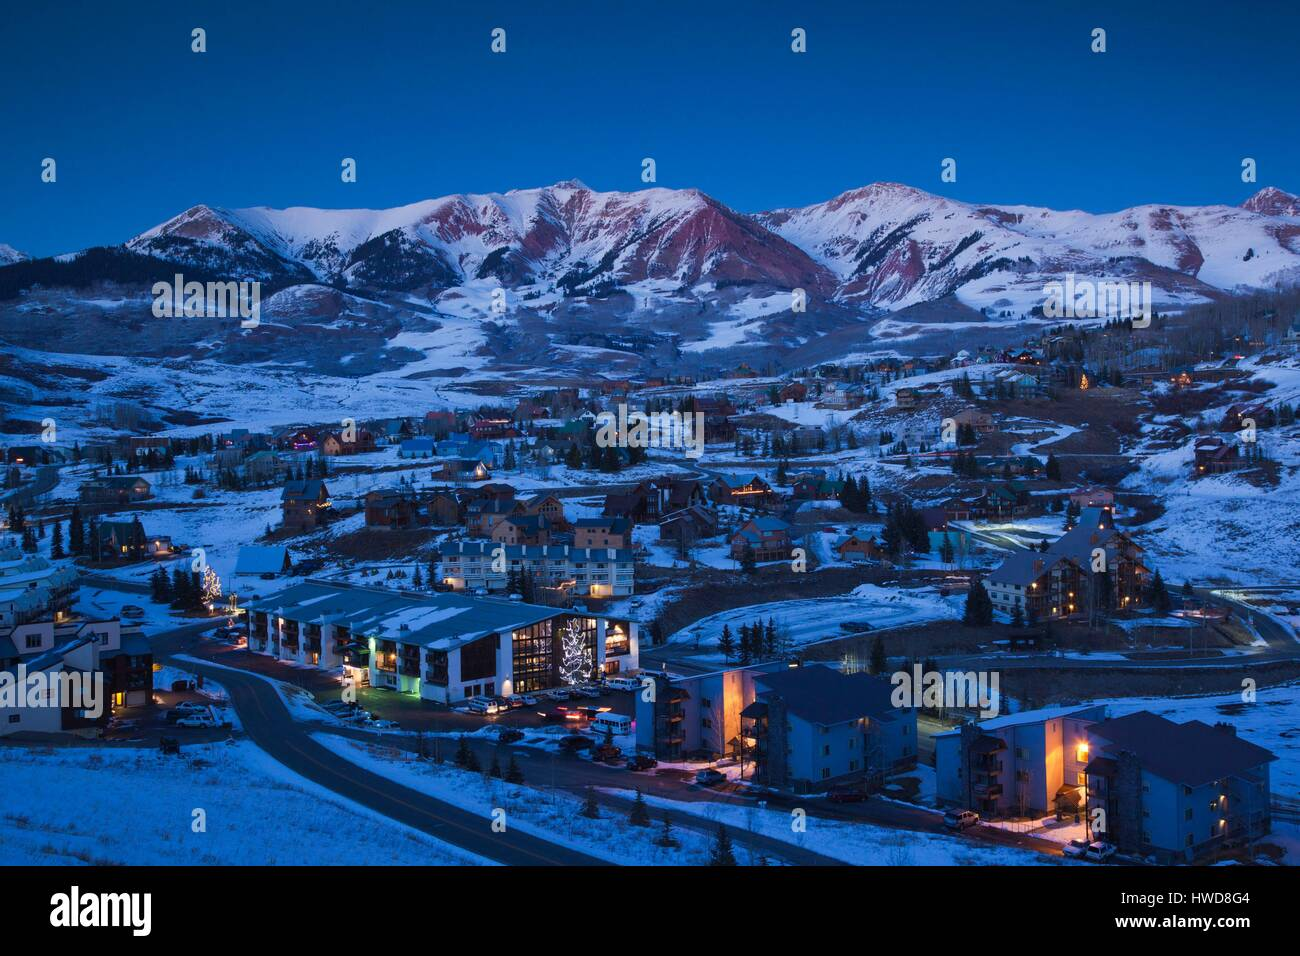 United States, Colorado, Crested Butte, Mount Crested Butte Ski Village, elevated view, winter, dusk - Stock Image